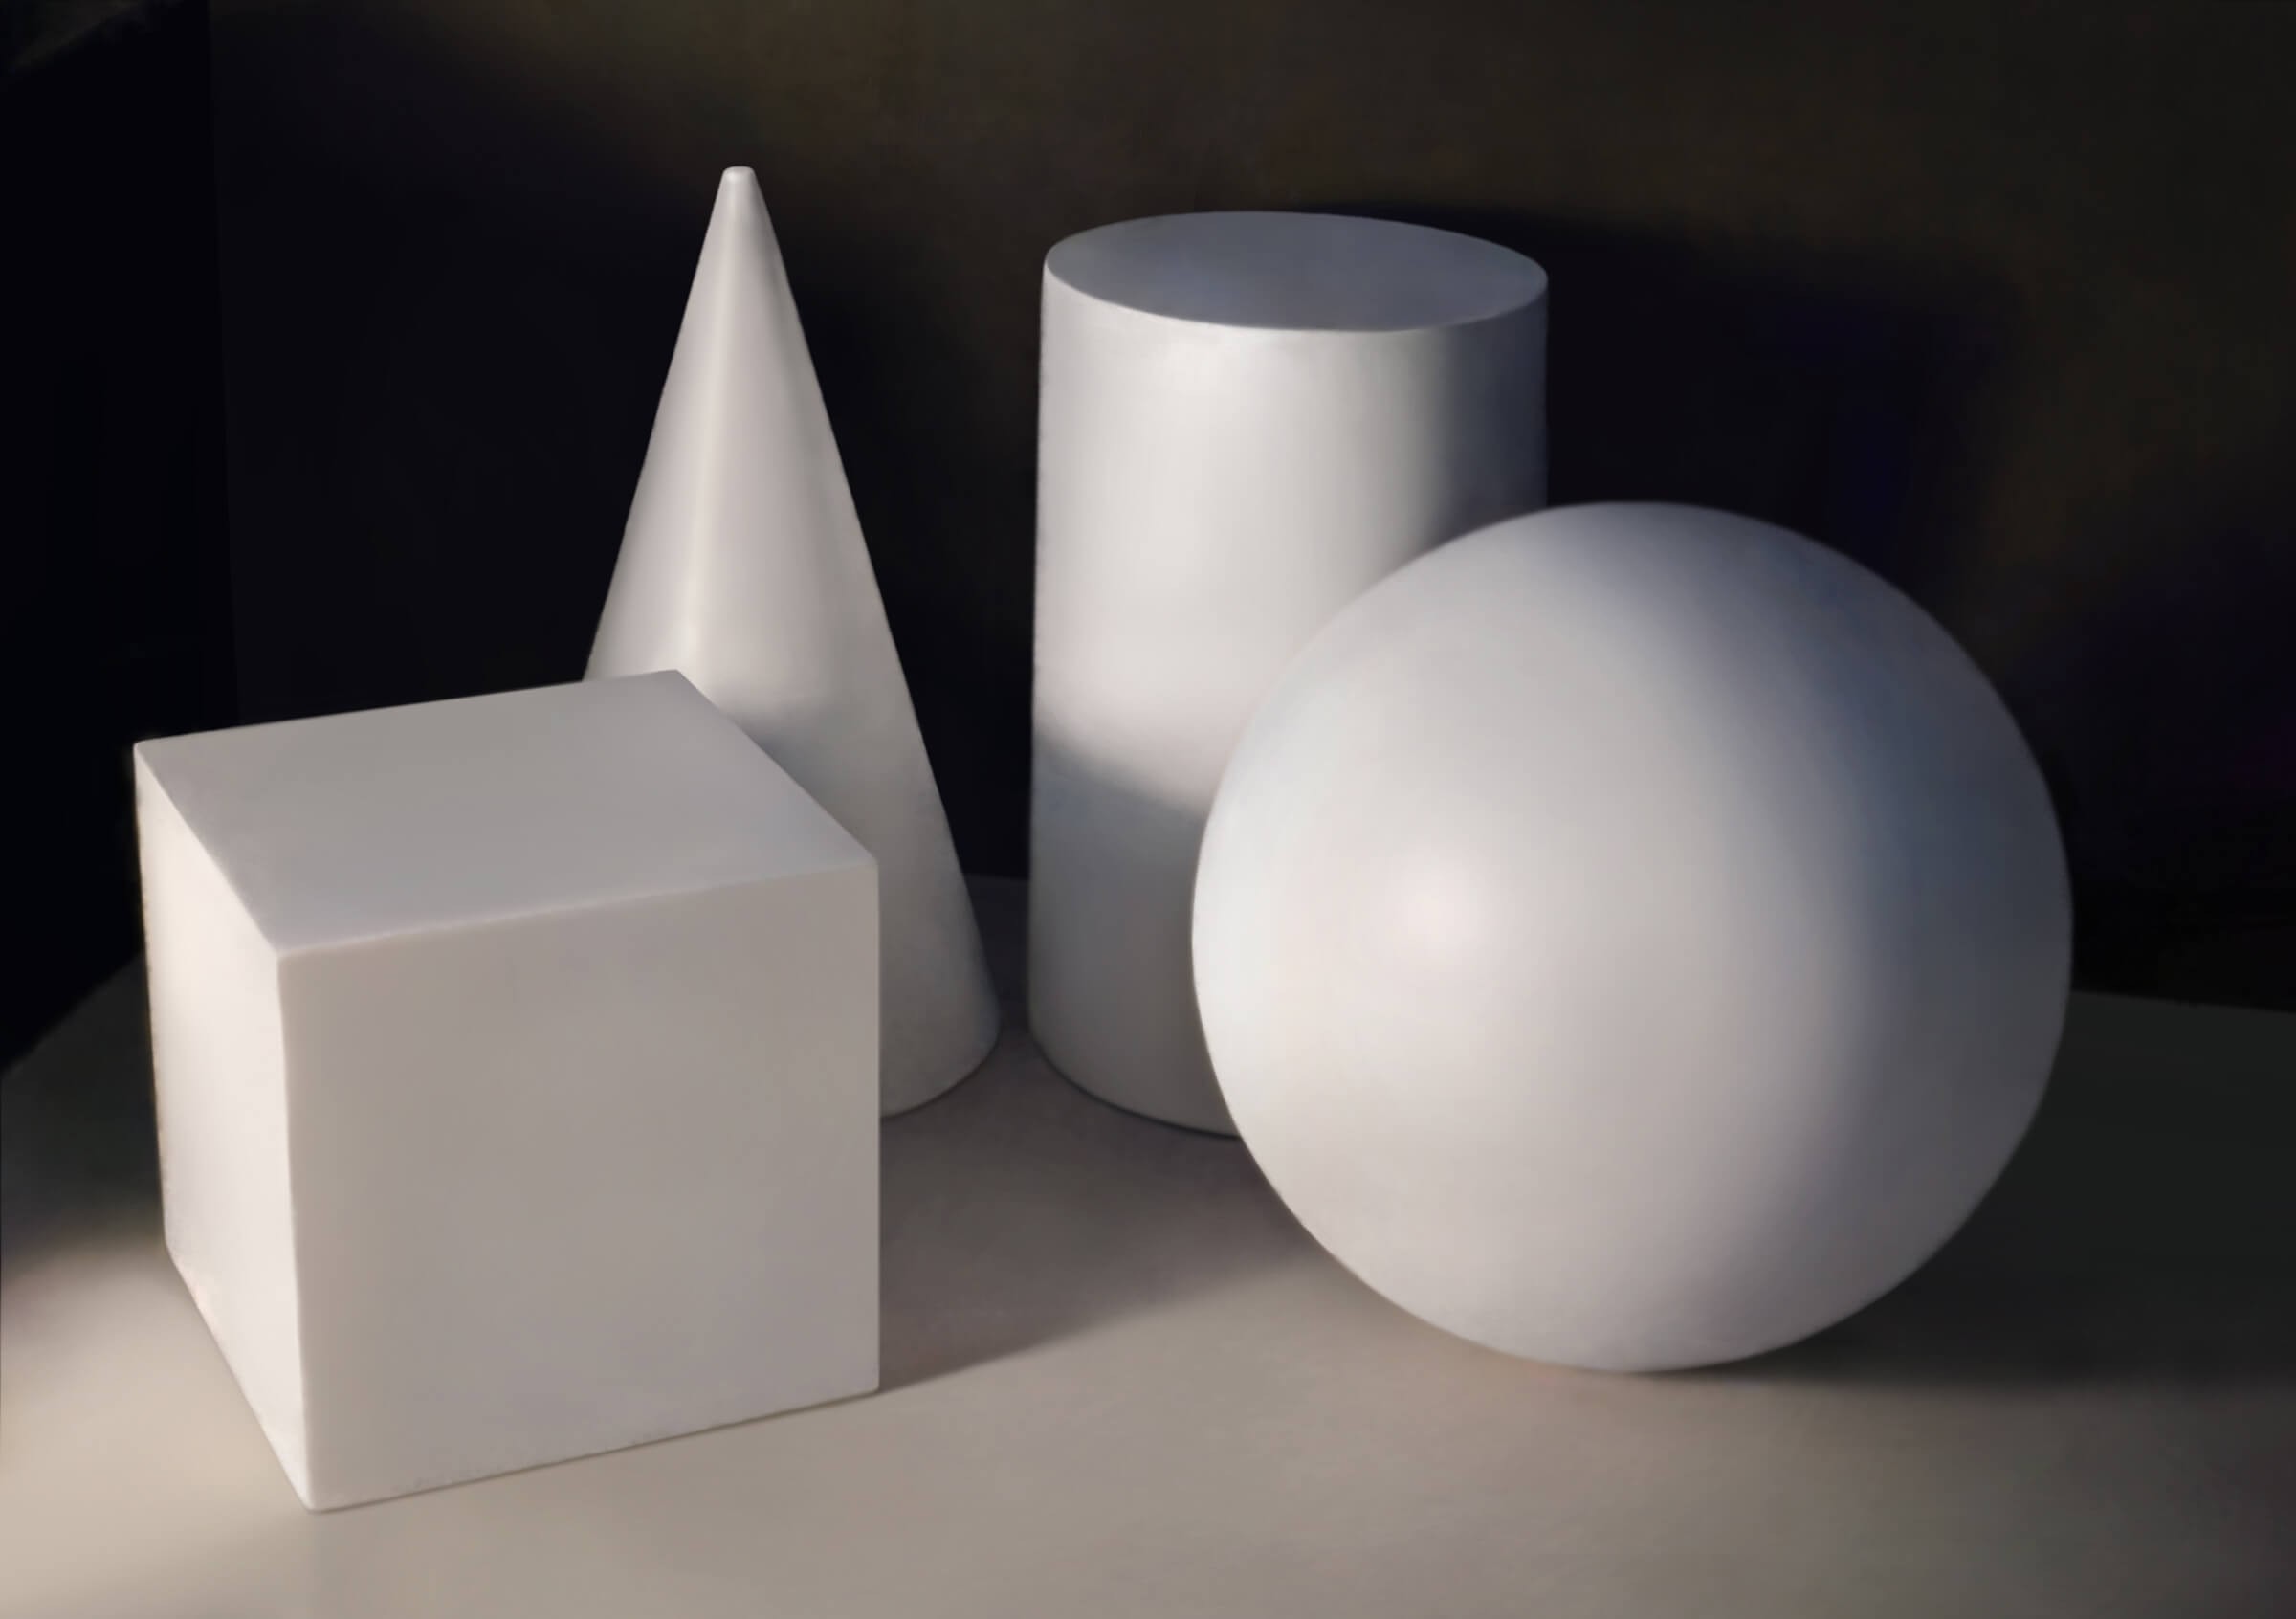 A still life digital painting of plain white shapes (a cube, sphere, cylinder, and cone) lit from the left.